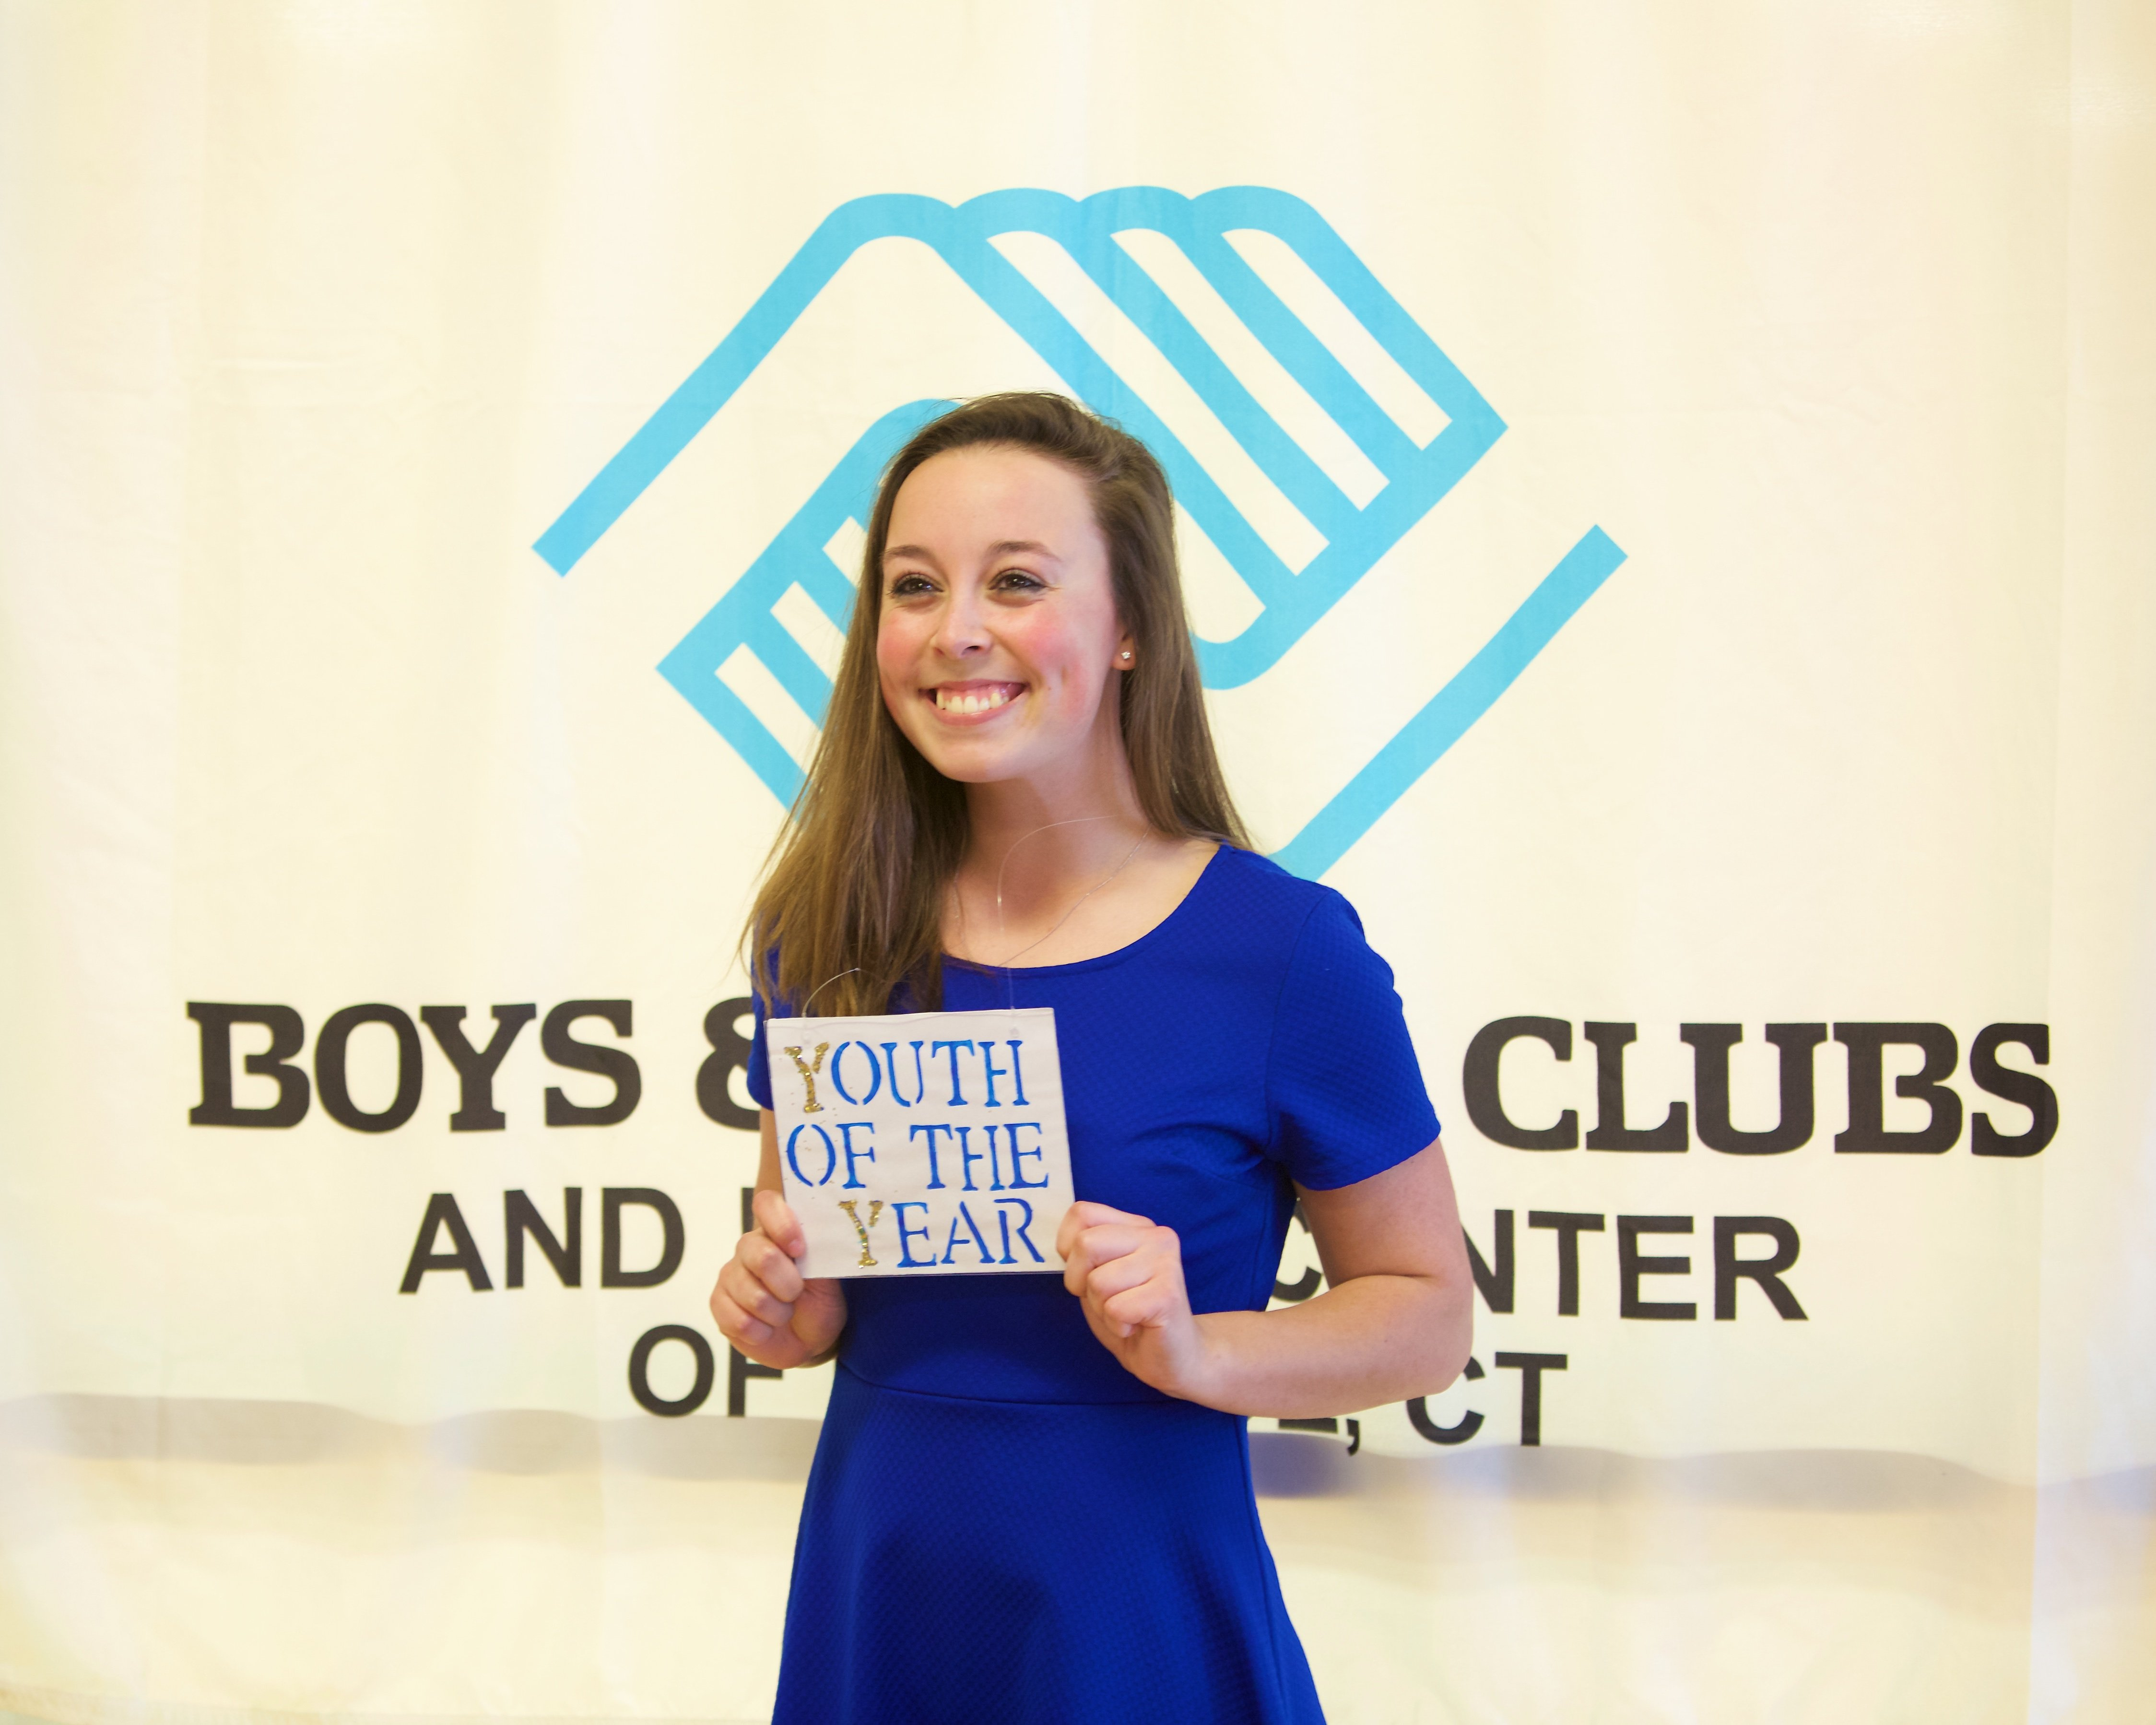 Boys & Girls Club of Bristol Family Center, Youth of the Year